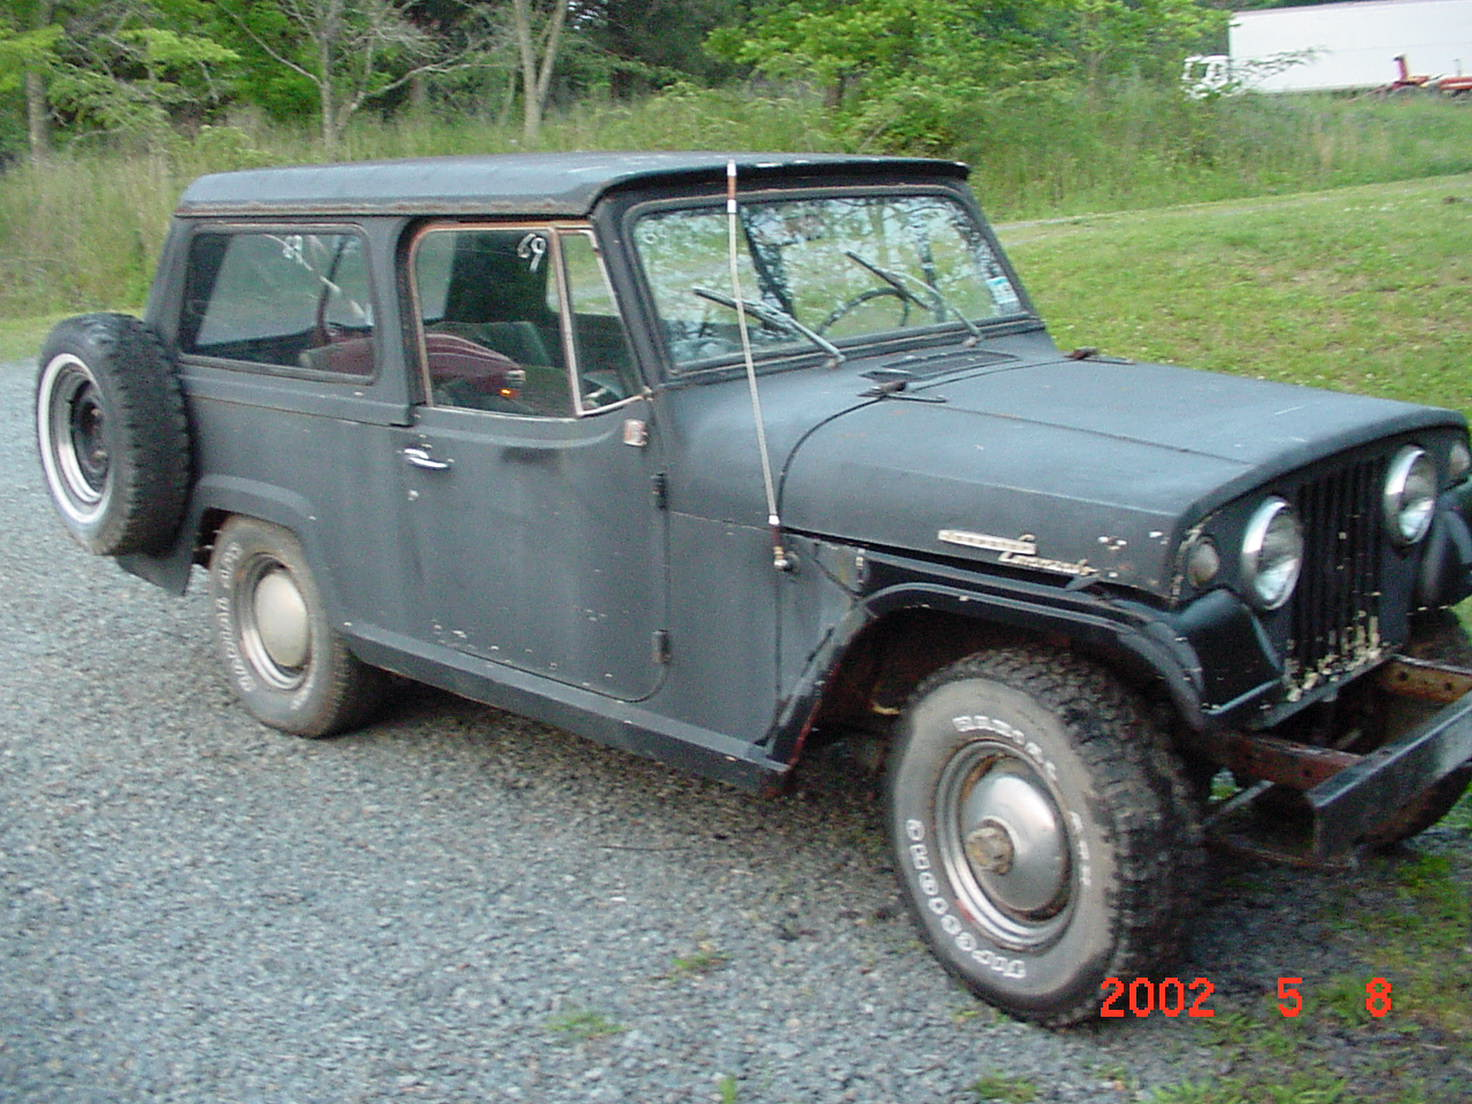 jeep jeepster commando 1972 3 1972 jeep jeepster commando information and photos momentcar 1969 jeepster commando wiring diagram at soozxer.org